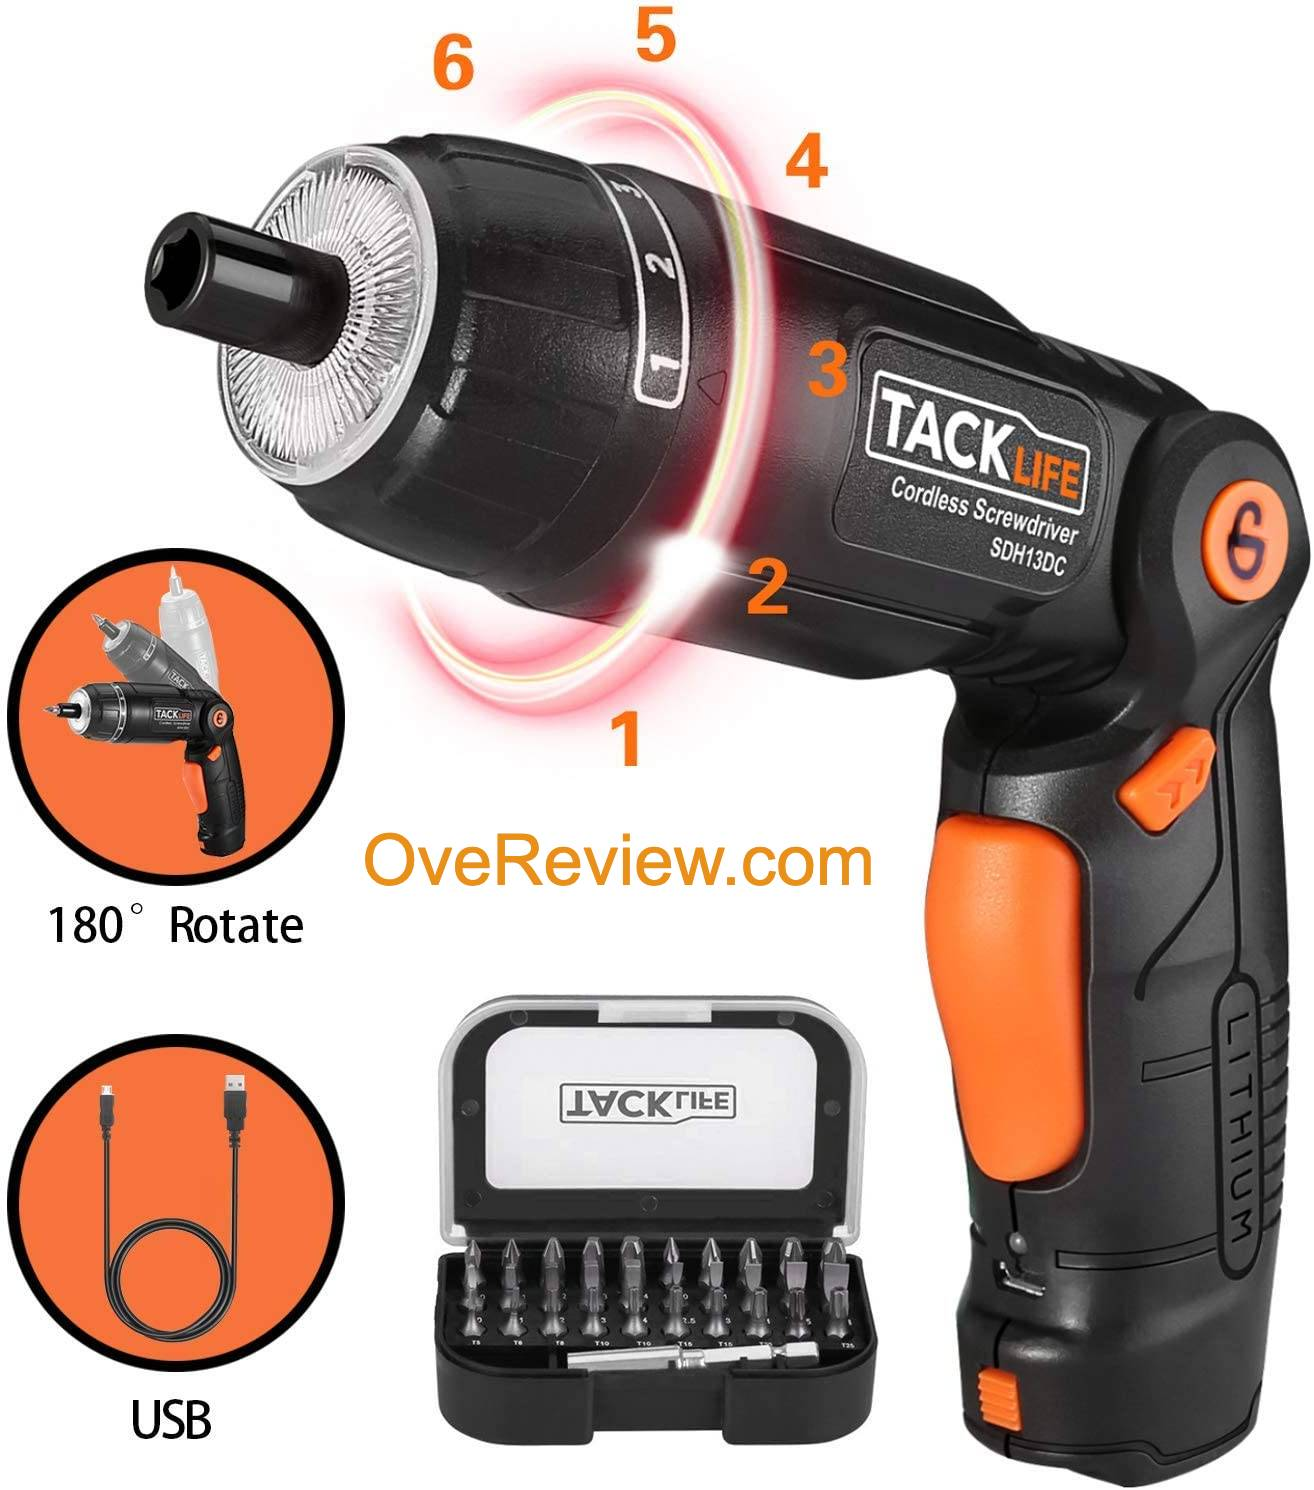 12 Best Cordless Screwdrivers of [year] - {Buyer's Guide} 9